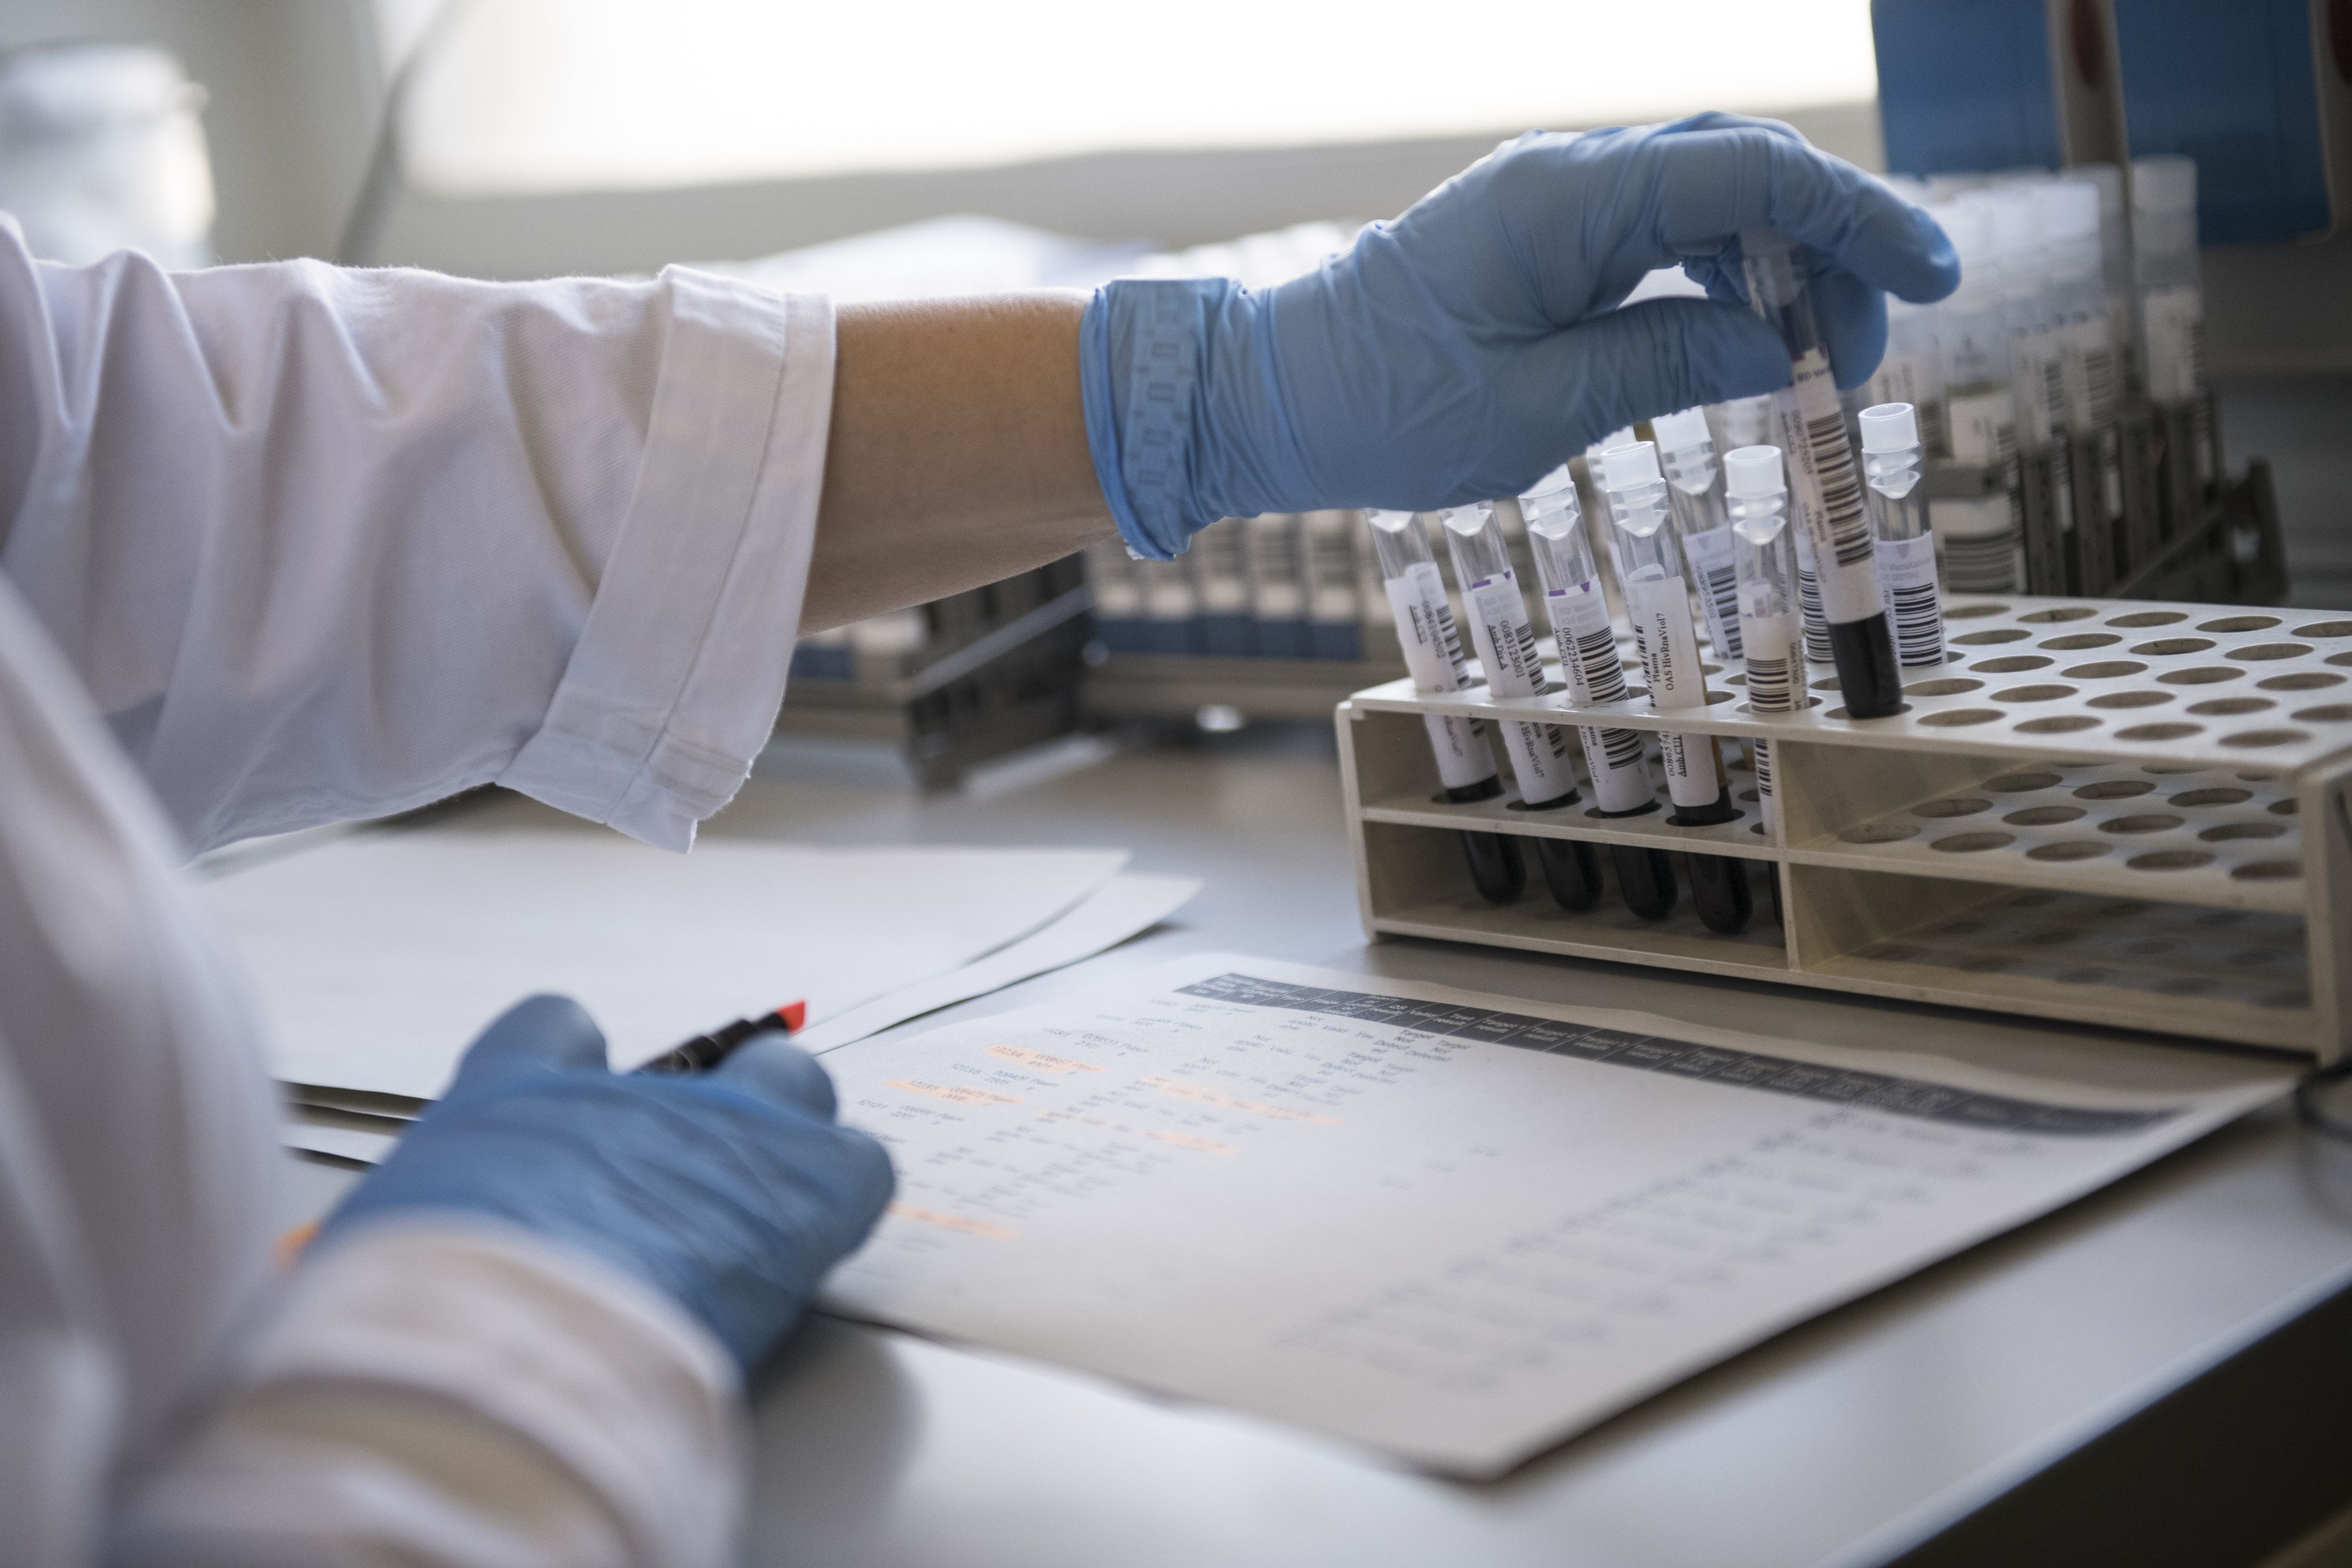 FDA approves treatment of critically ill coronavirus patients using recovered patients' blood